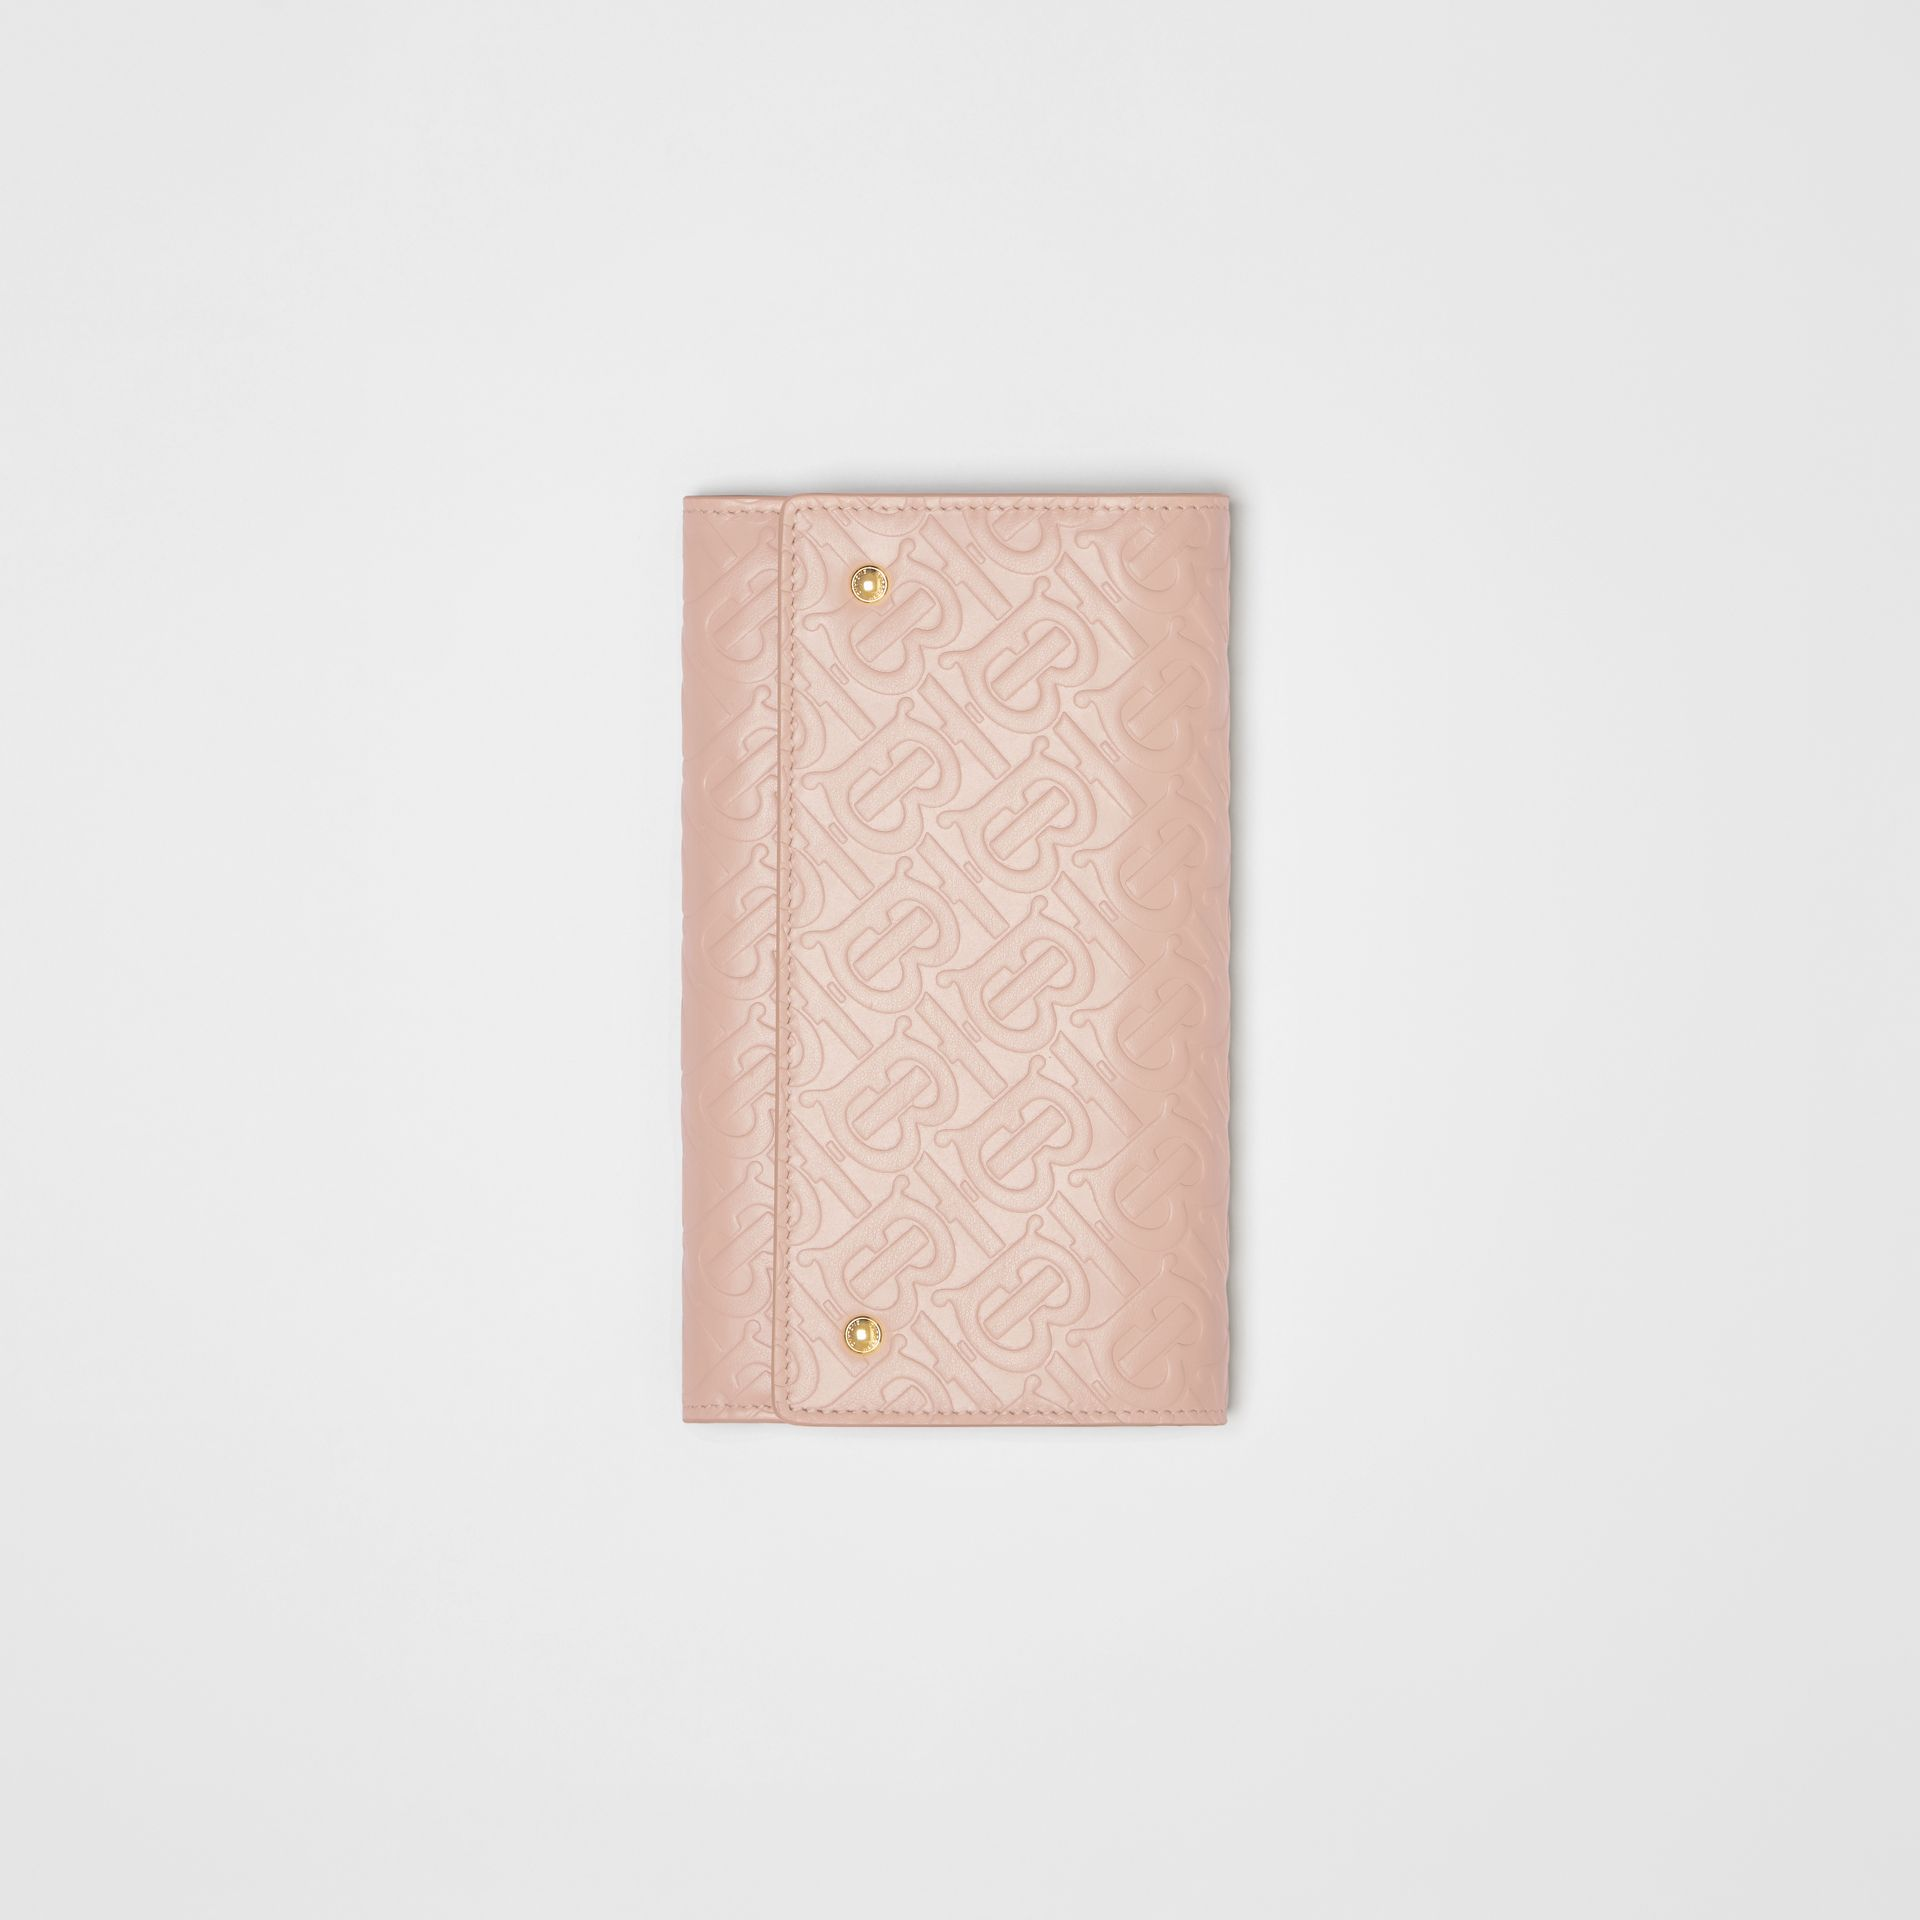 Portefeuille en cuir Monogram et sangle amovible (Beige Rose) - Femme | Burberry Canada - photo de la galerie 6